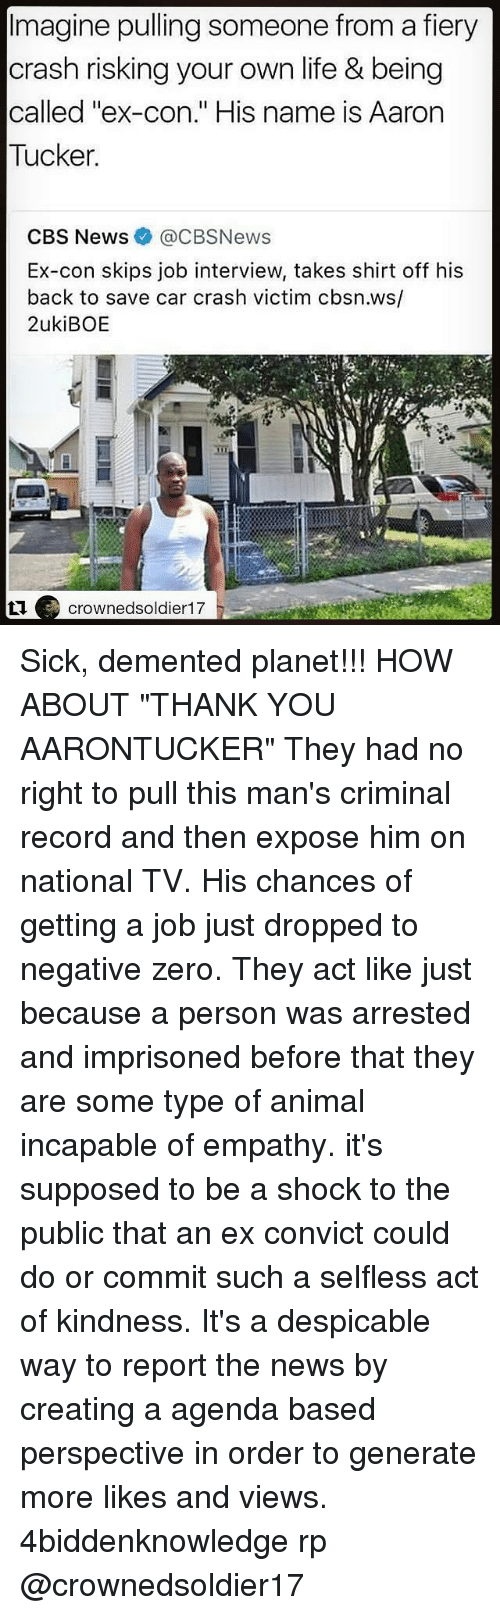 """shirts off: Imagine pulling someone from a fiery  crash risking your own life & being  called """"ex-con."""" His name is Aarorn  Tucker  CBS News@CBSNews  Ex-con skips job interview, takes shirt off his  back to save car crash victim cbsn.ws/  2ukiBOE  crownedsoldier17 Sick, demented planet!!! HOW ABOUT """"THANK YOU AARONTUCKER"""" They had no right to pull this man's criminal record and then expose him on national TV. His chances of getting a job just dropped to negative zero. They act like just because a person was arrested and imprisoned before that they are some type of animal incapable of empathy. it's supposed to be a shock to the public that an ex convict could do or commit such a selfless act of kindness. It's a despicable way to report the news by creating a agenda based perspective in order to generate more likes and views. 4biddenknowledge rp @crownedsoldier17"""